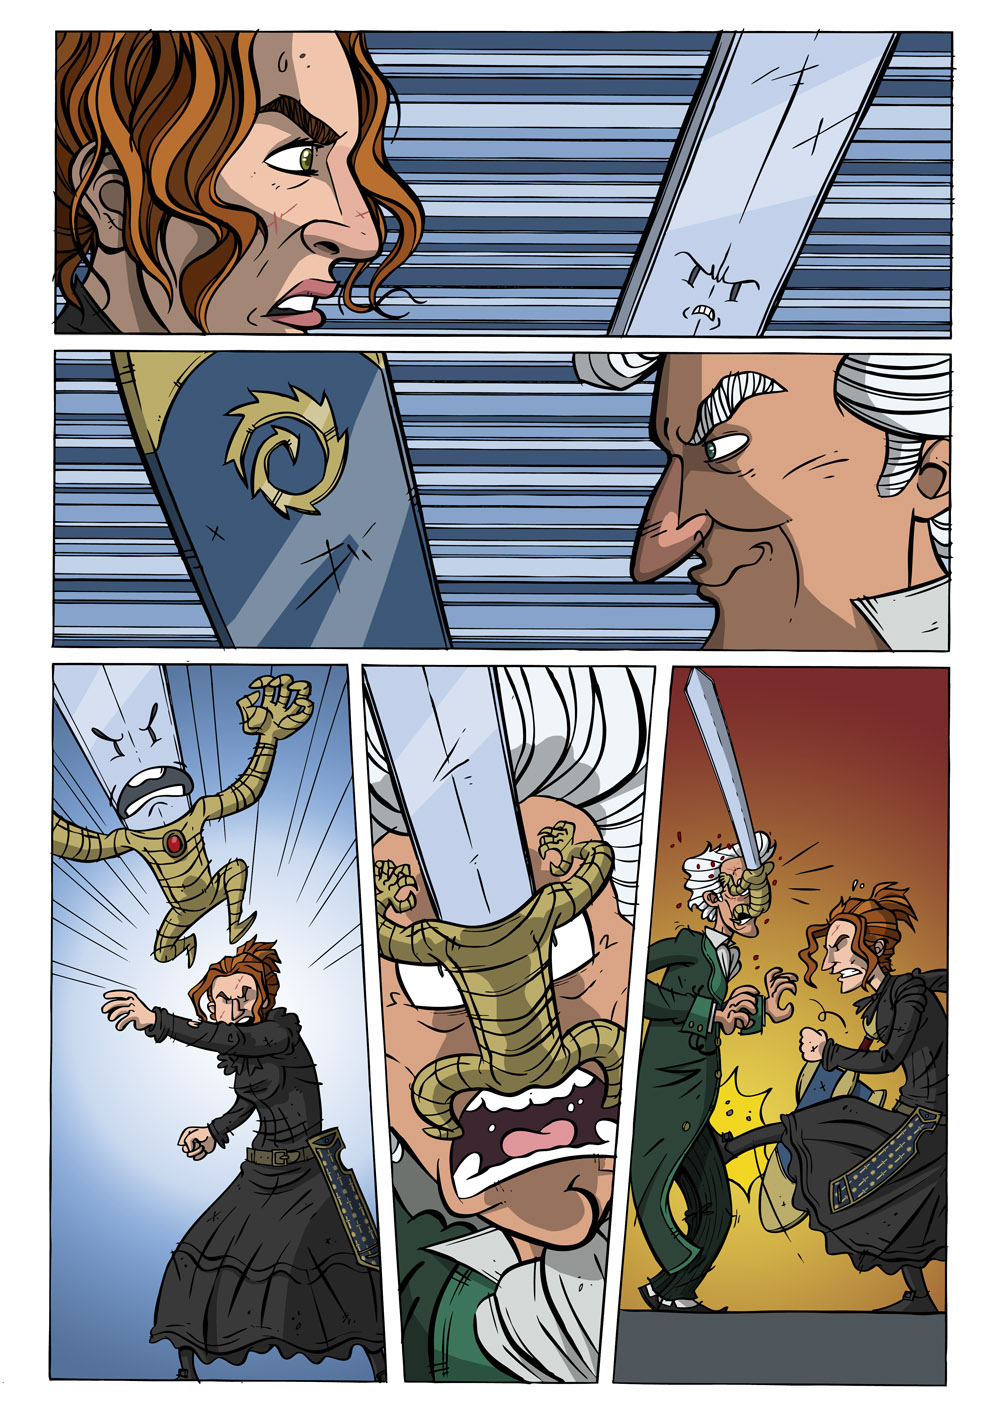 99 Swords #4 pg 1